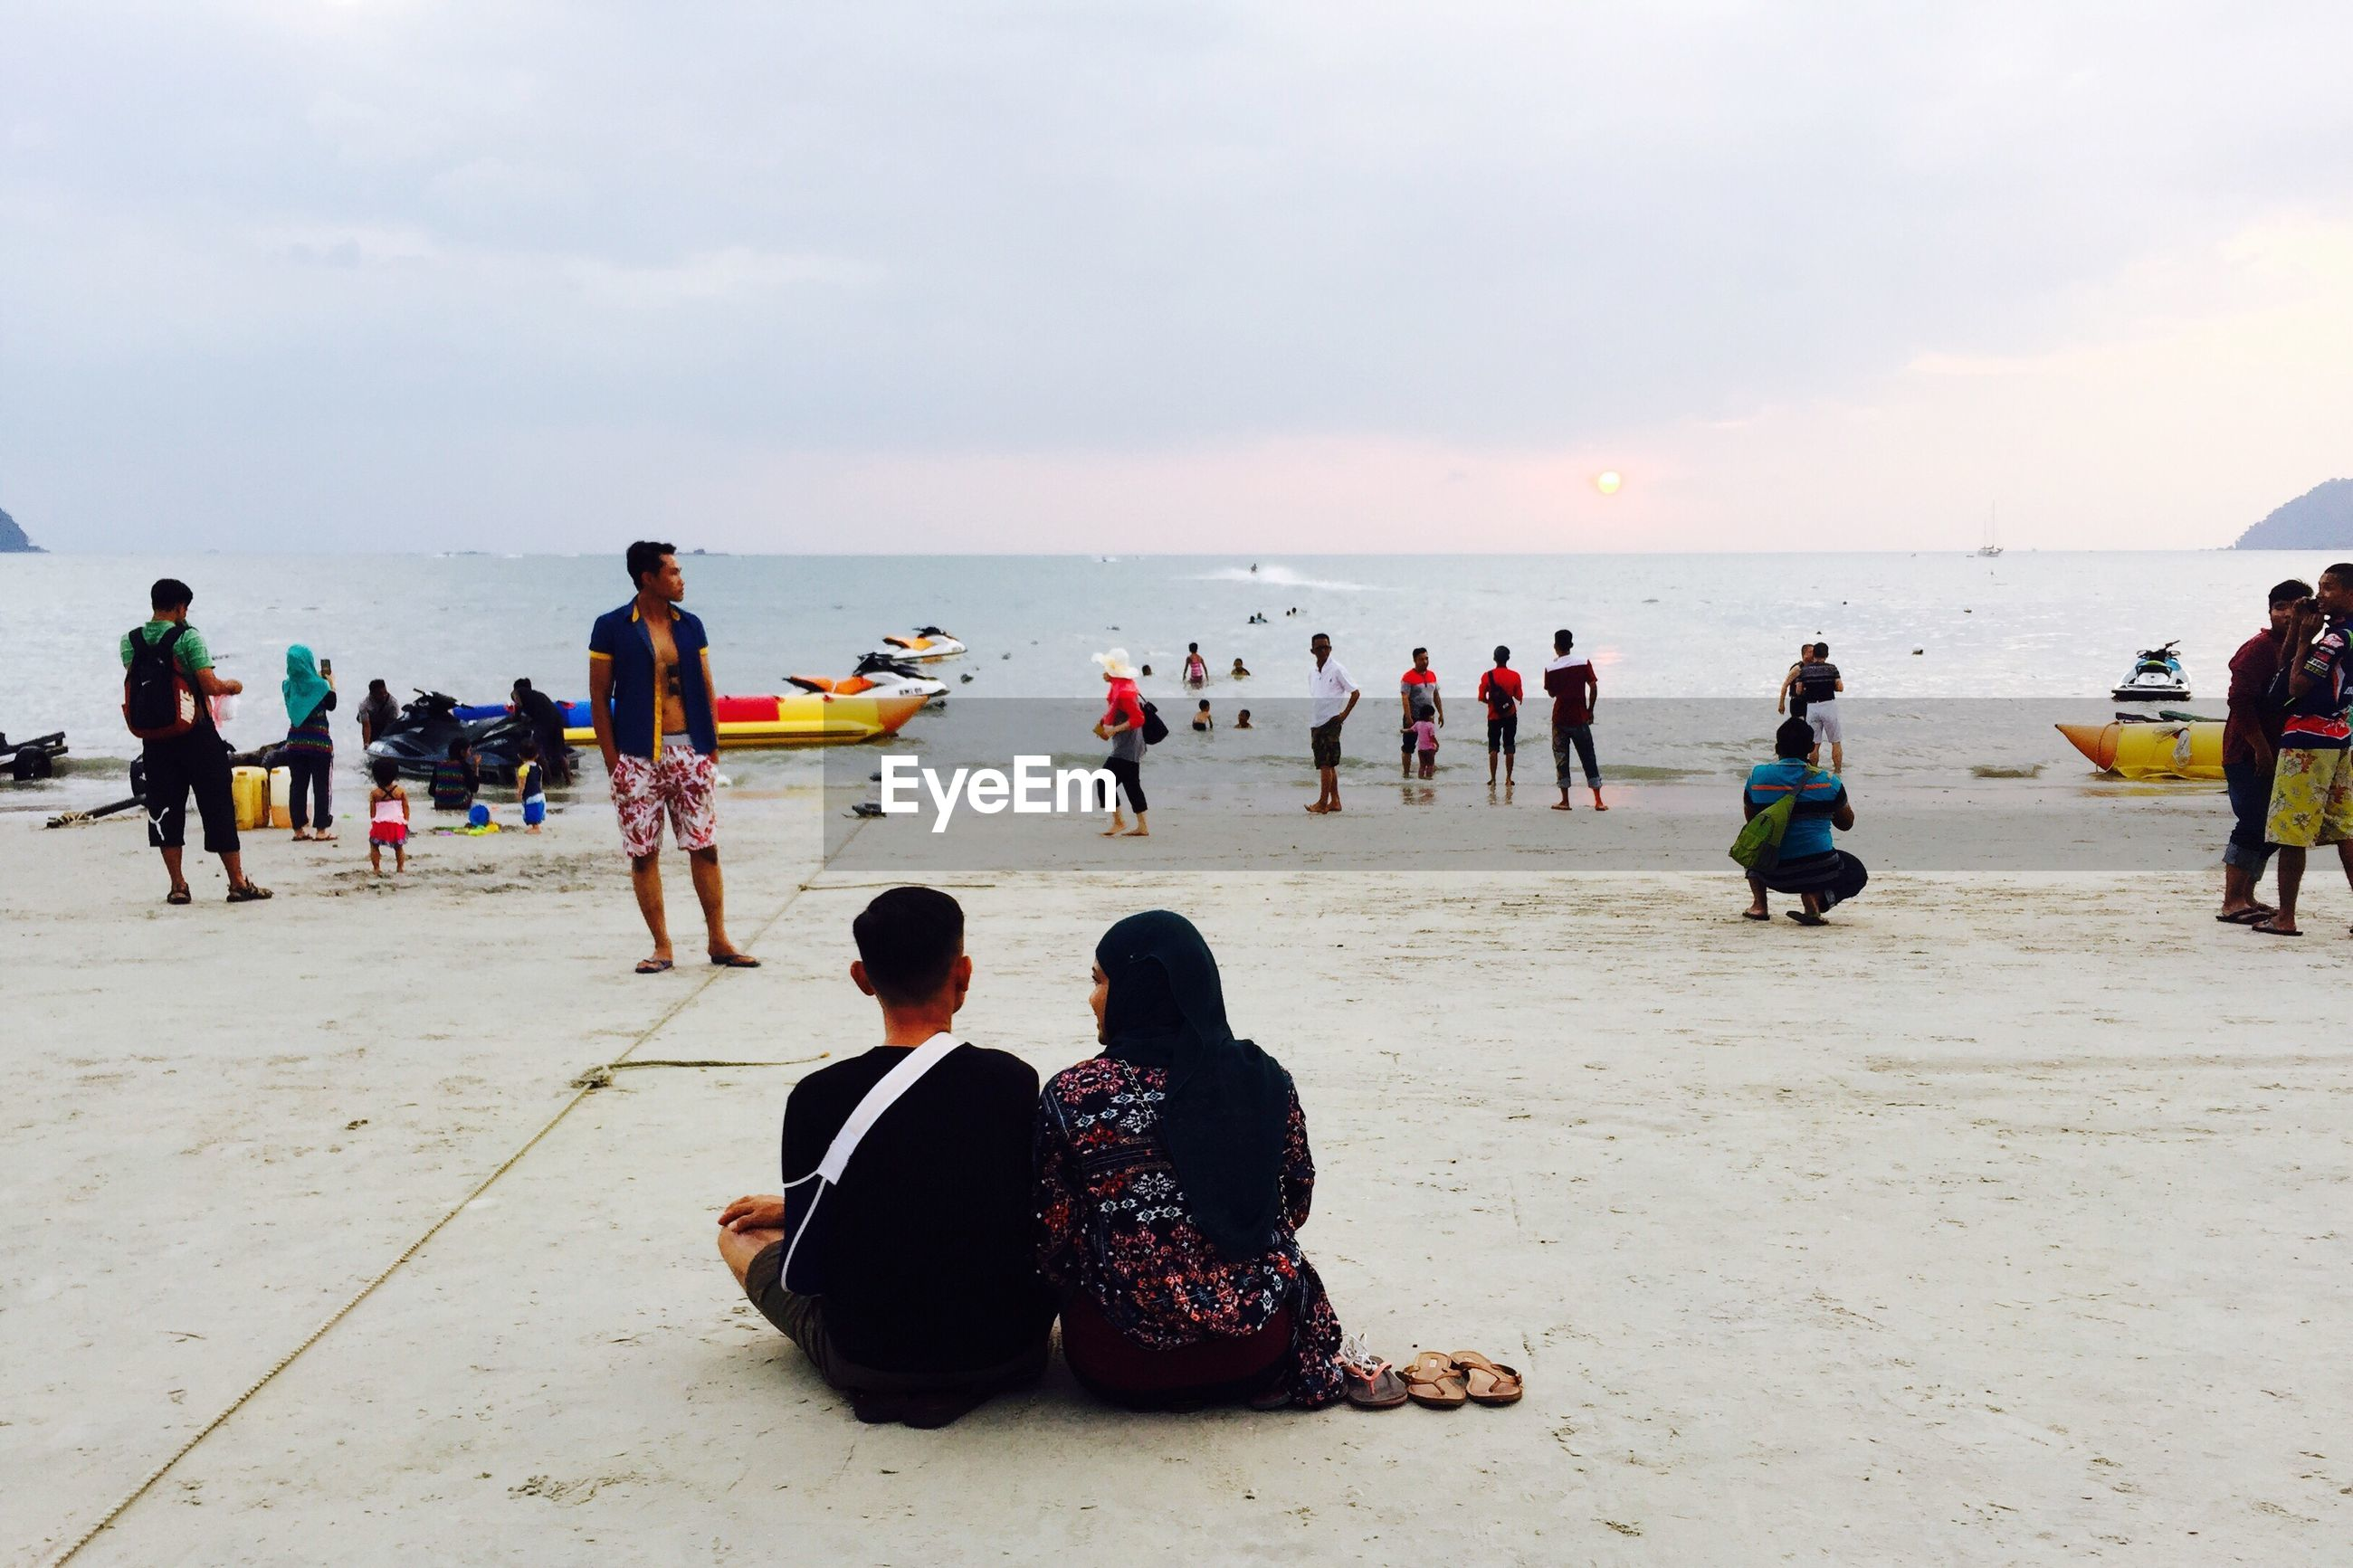 sea, large group of people, sky, lifestyles, water, beach, leisure activity, men, horizon over water, person, cloud - sky, shore, vacations, mixed age range, togetherness, enjoyment, sand, tourist, weekend activities